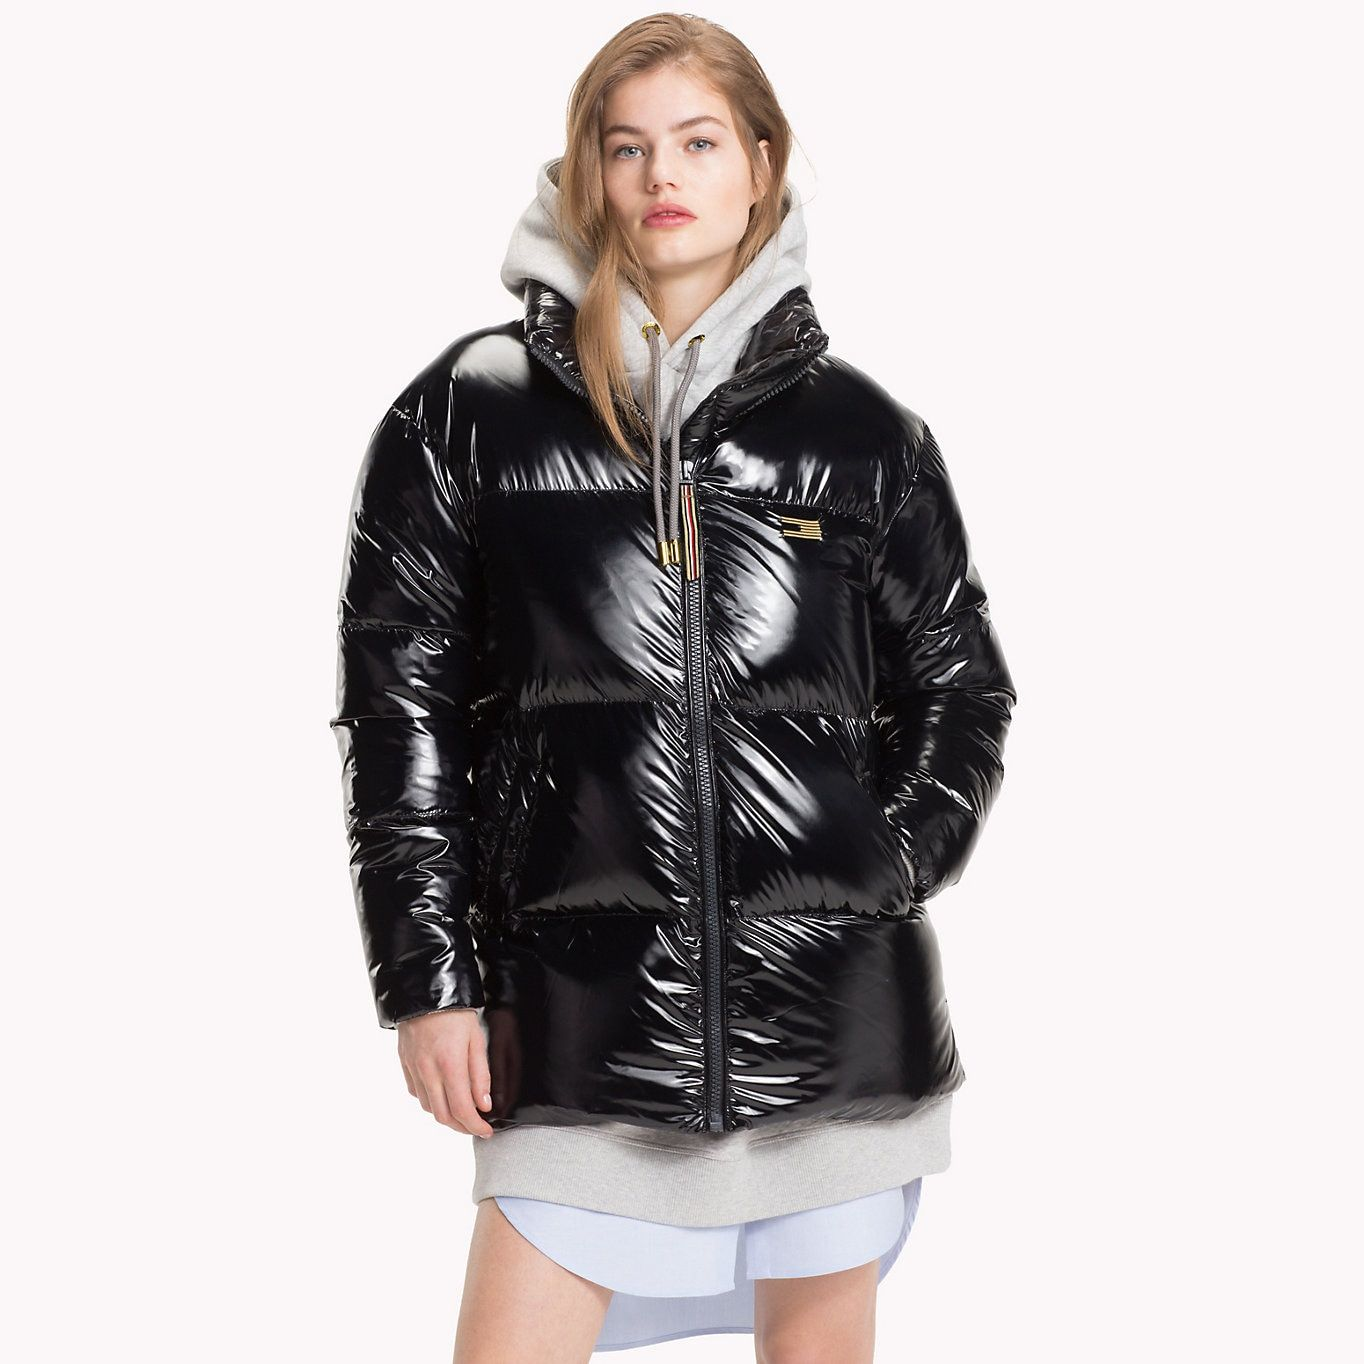 Tommy Hilfiger Tommy Icons Puffer Jacke Black Beauty Tommy Hilfiger Damen Main Image Puffer Jacket Women Tommy Hilfiger Jackets